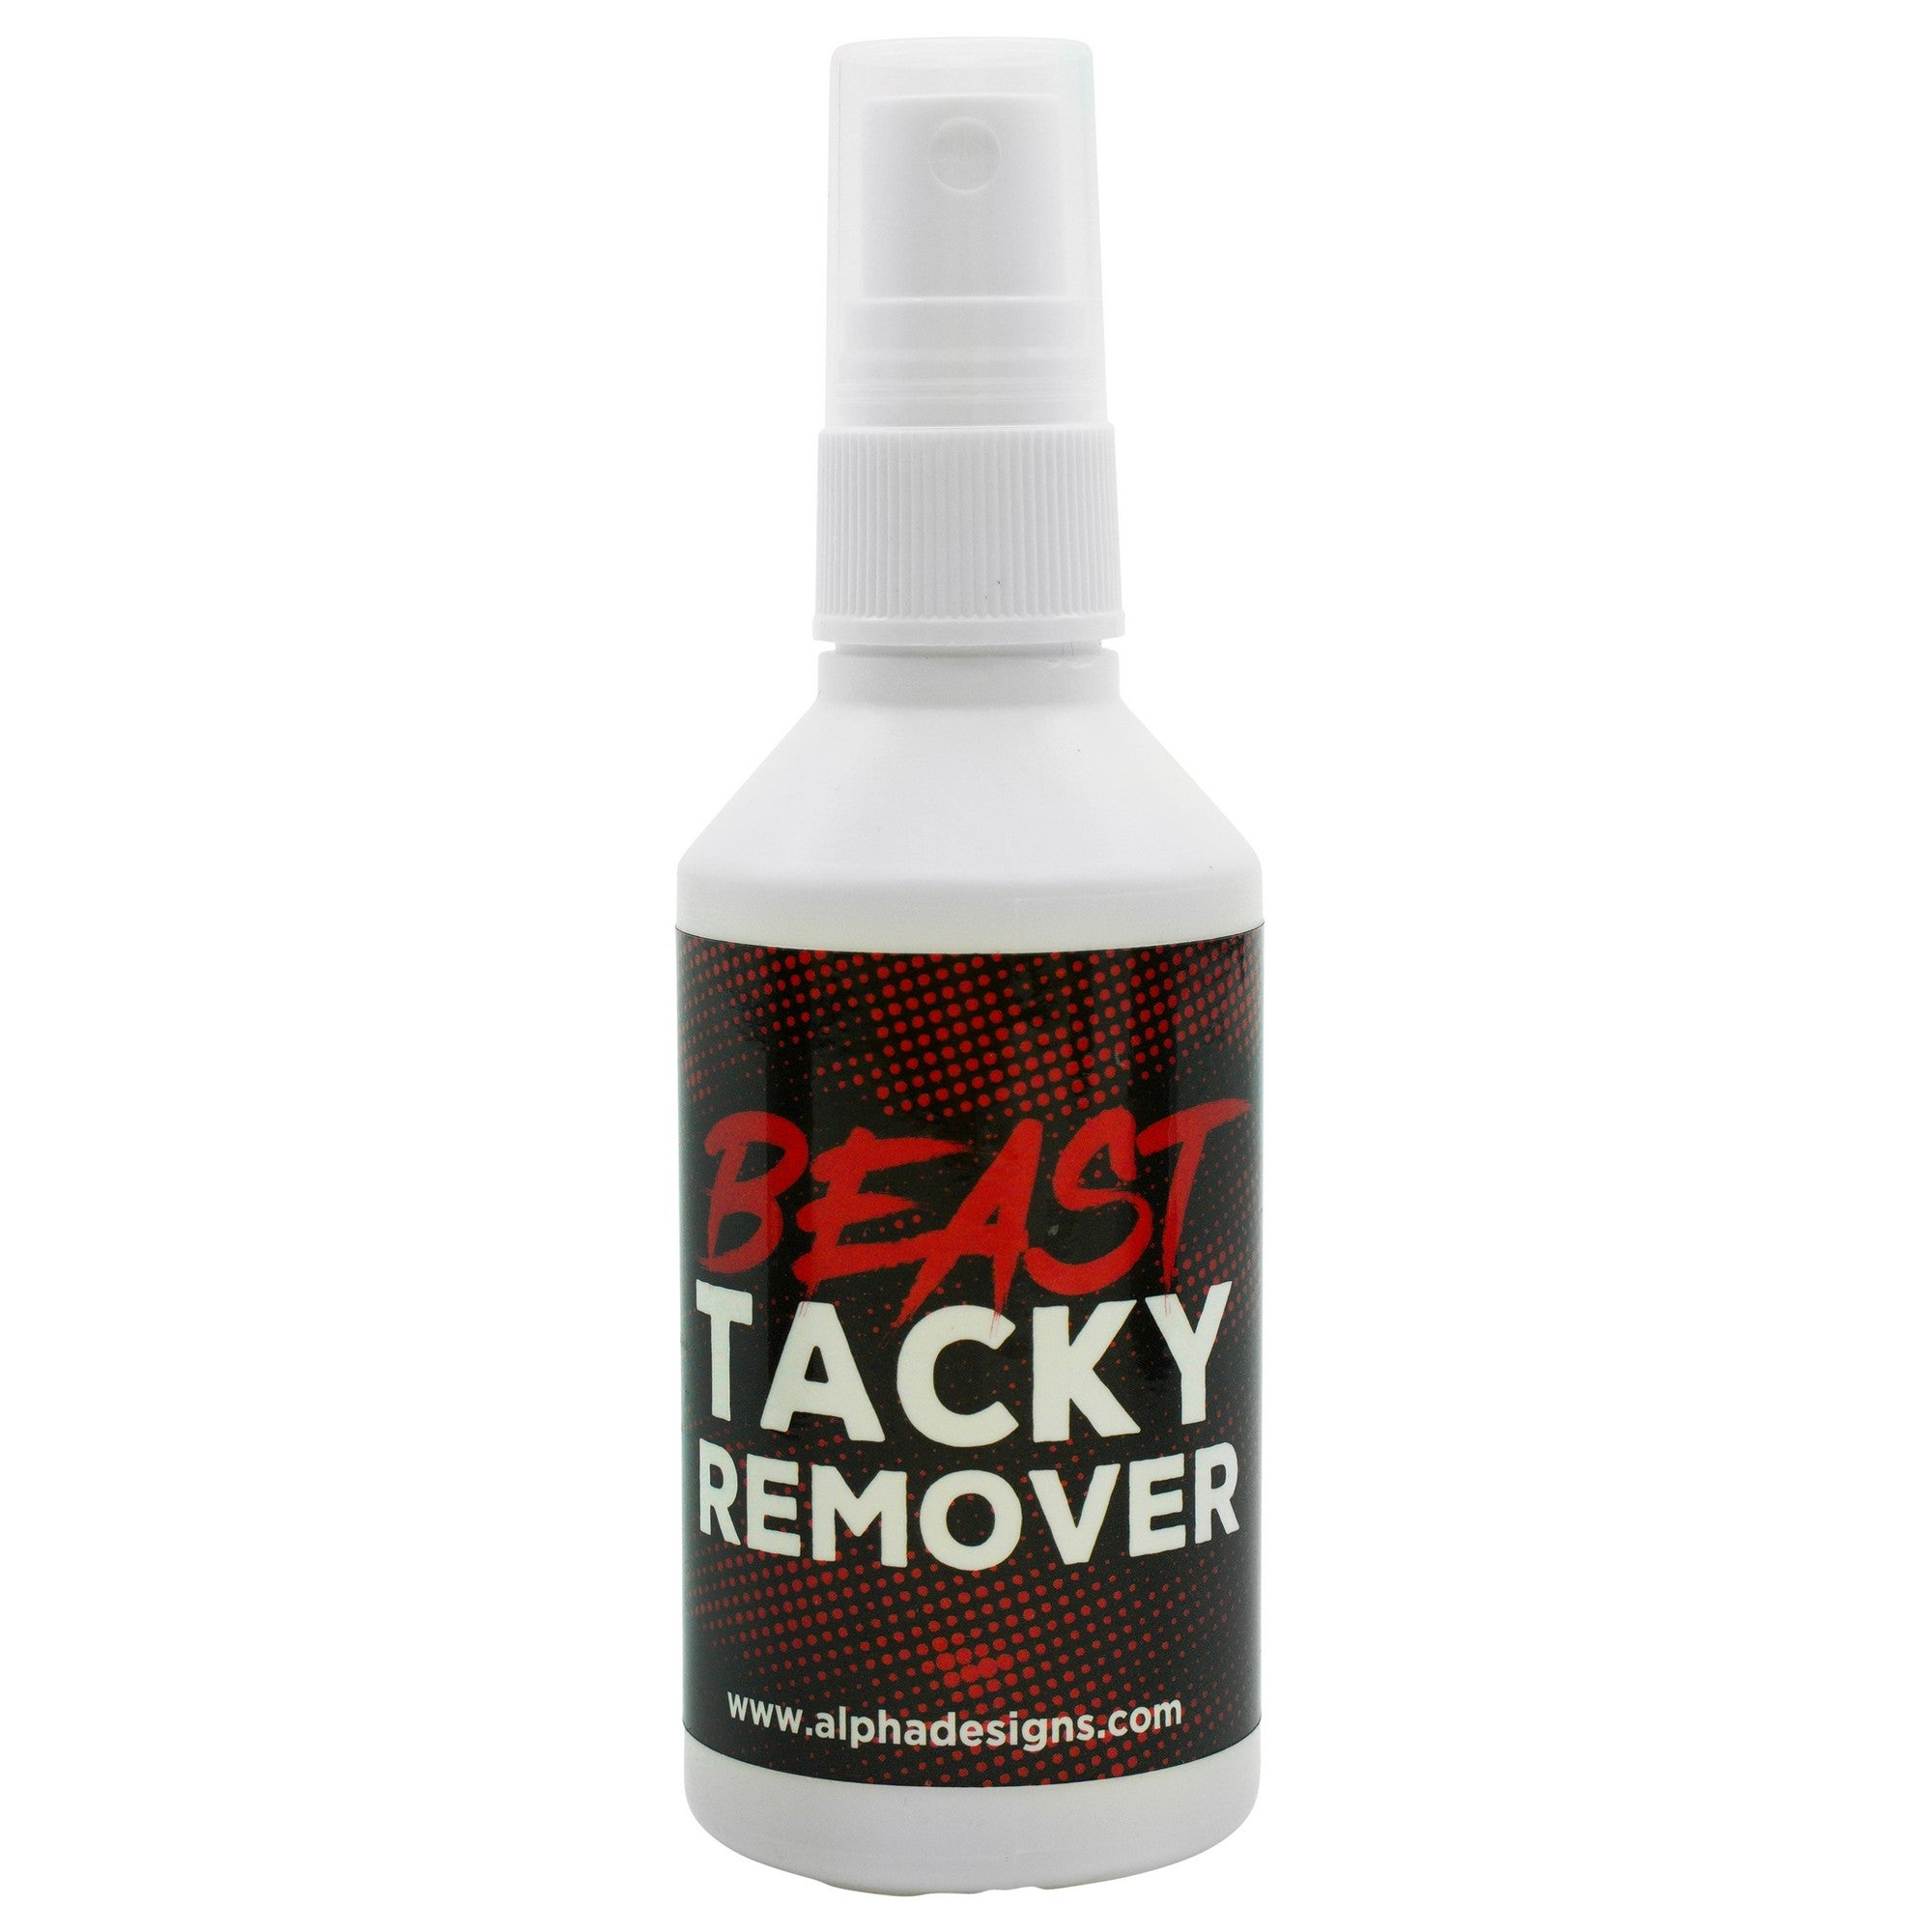 beast tacky remover